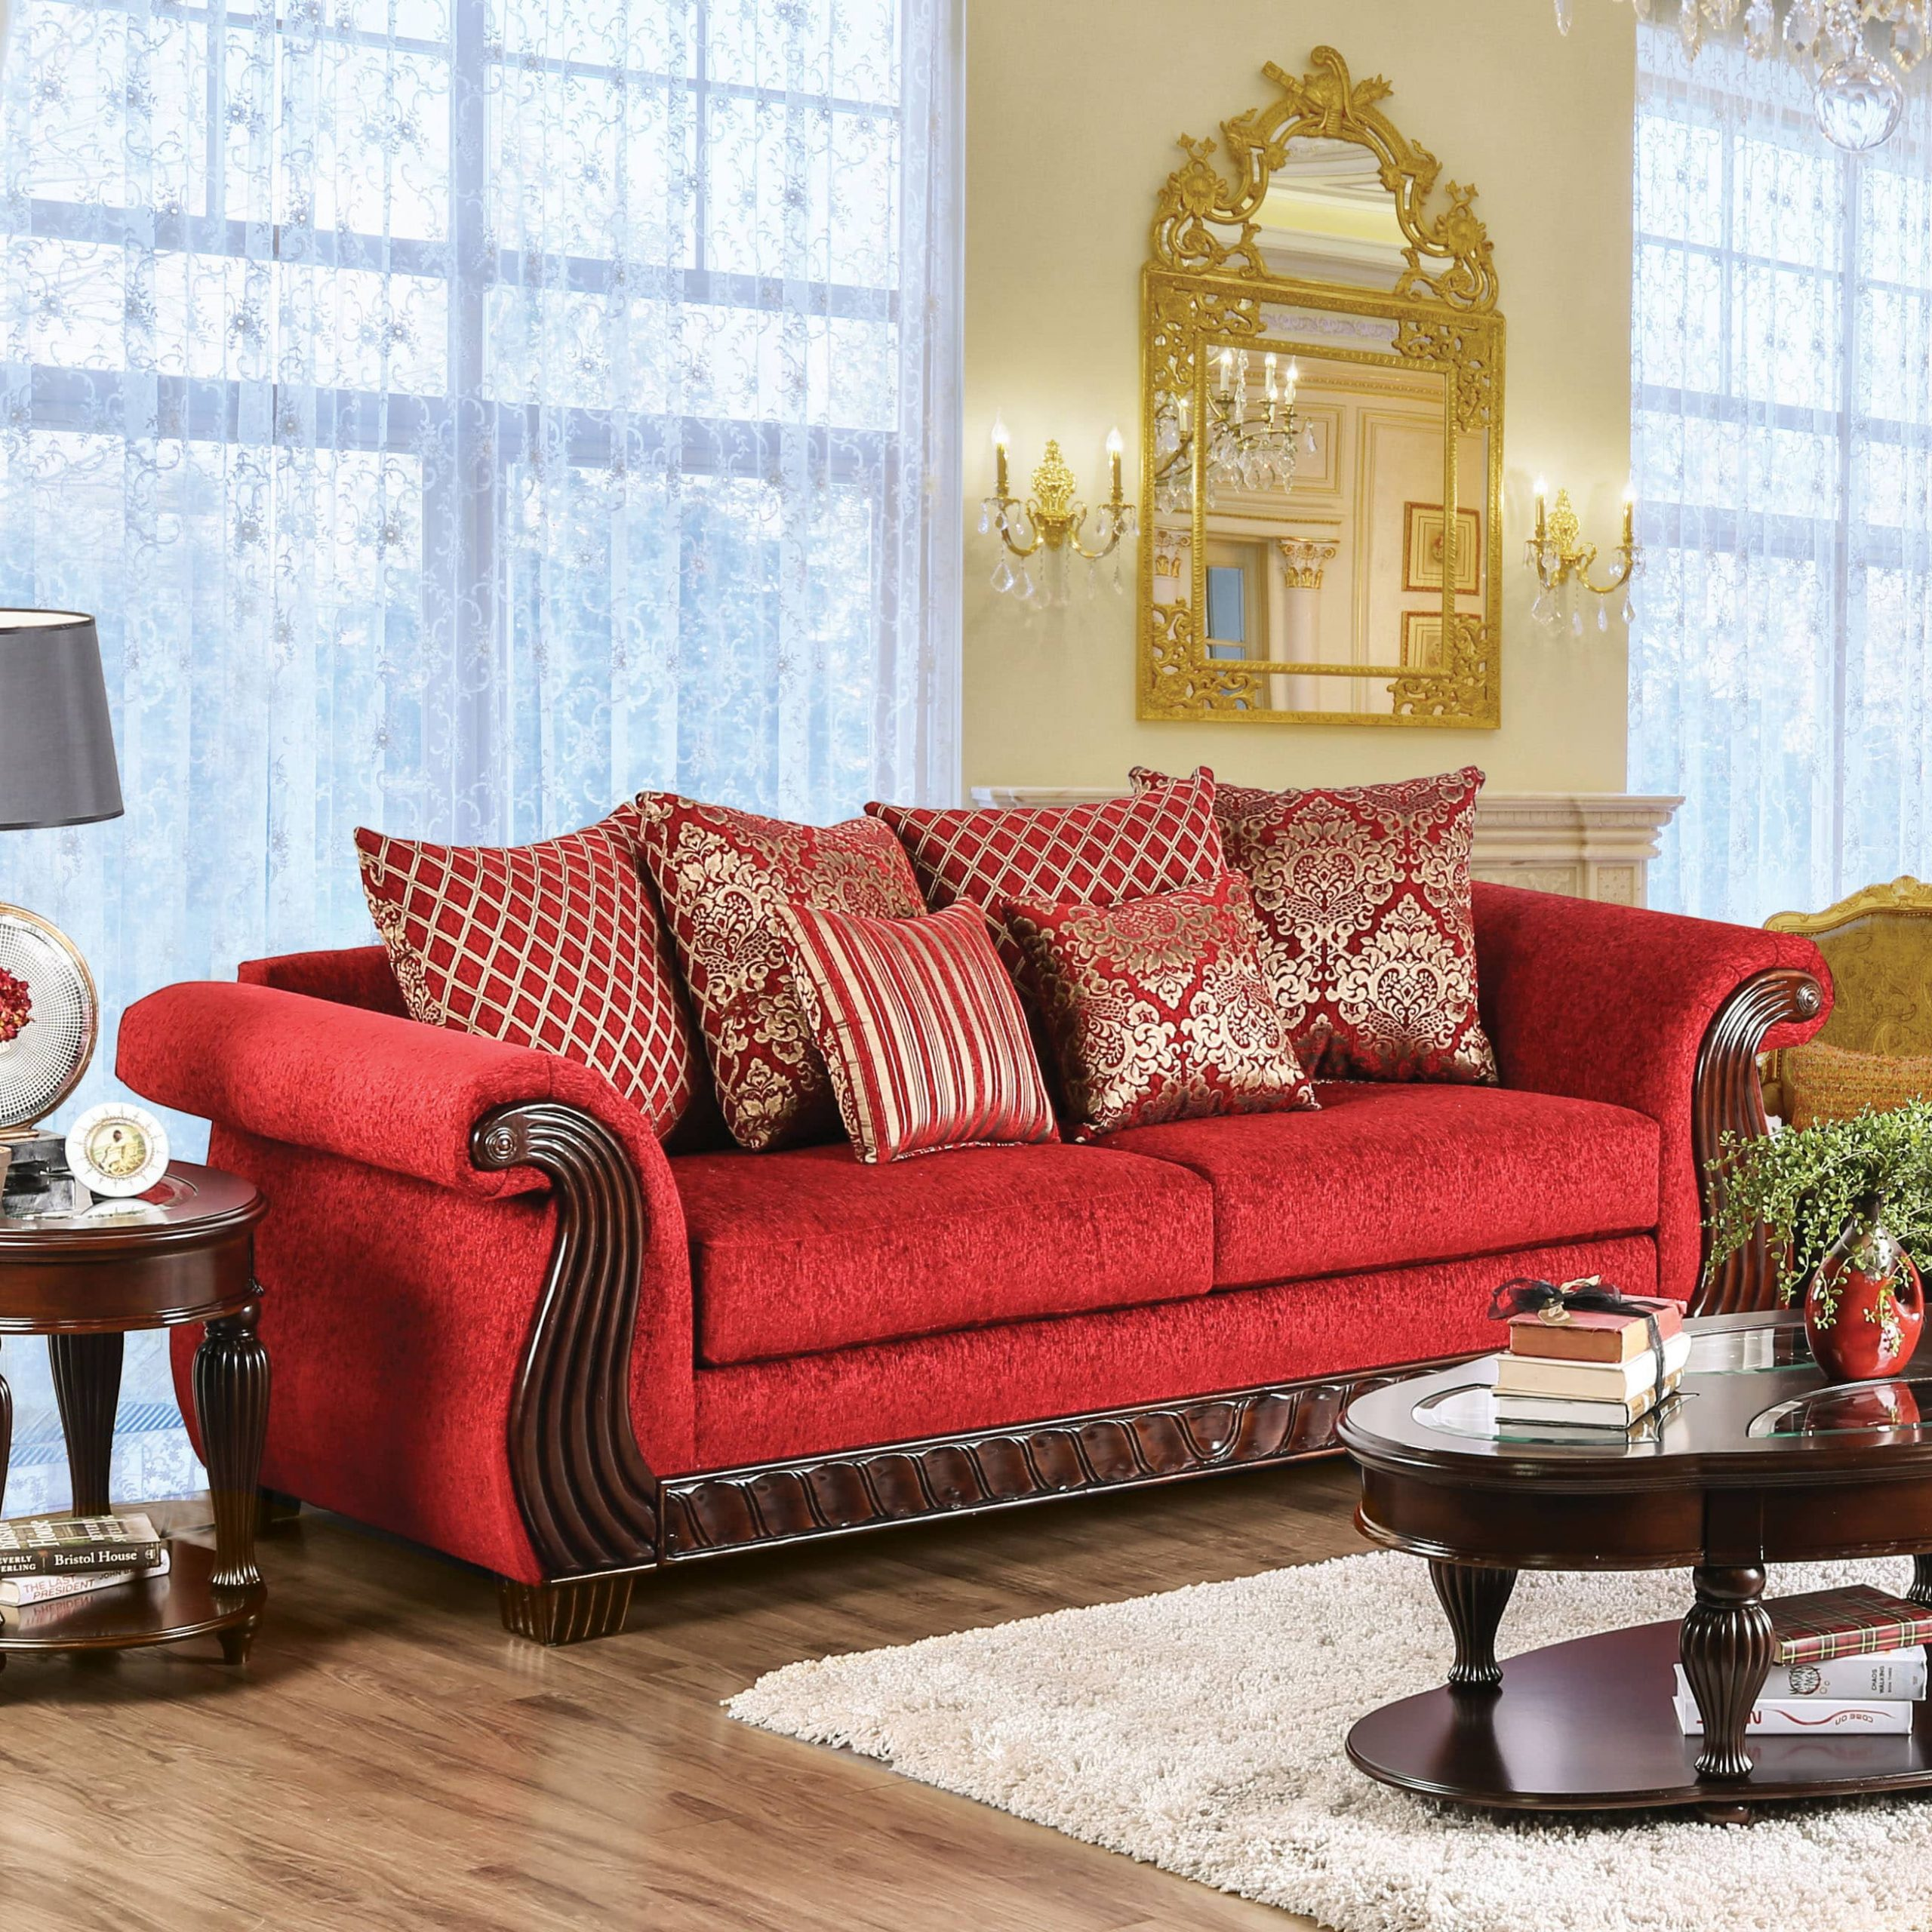 Furniture Of America Ferga Traditional Wood Trim Ruby Red Pertaining To Red Sofas (View 2 of 15)